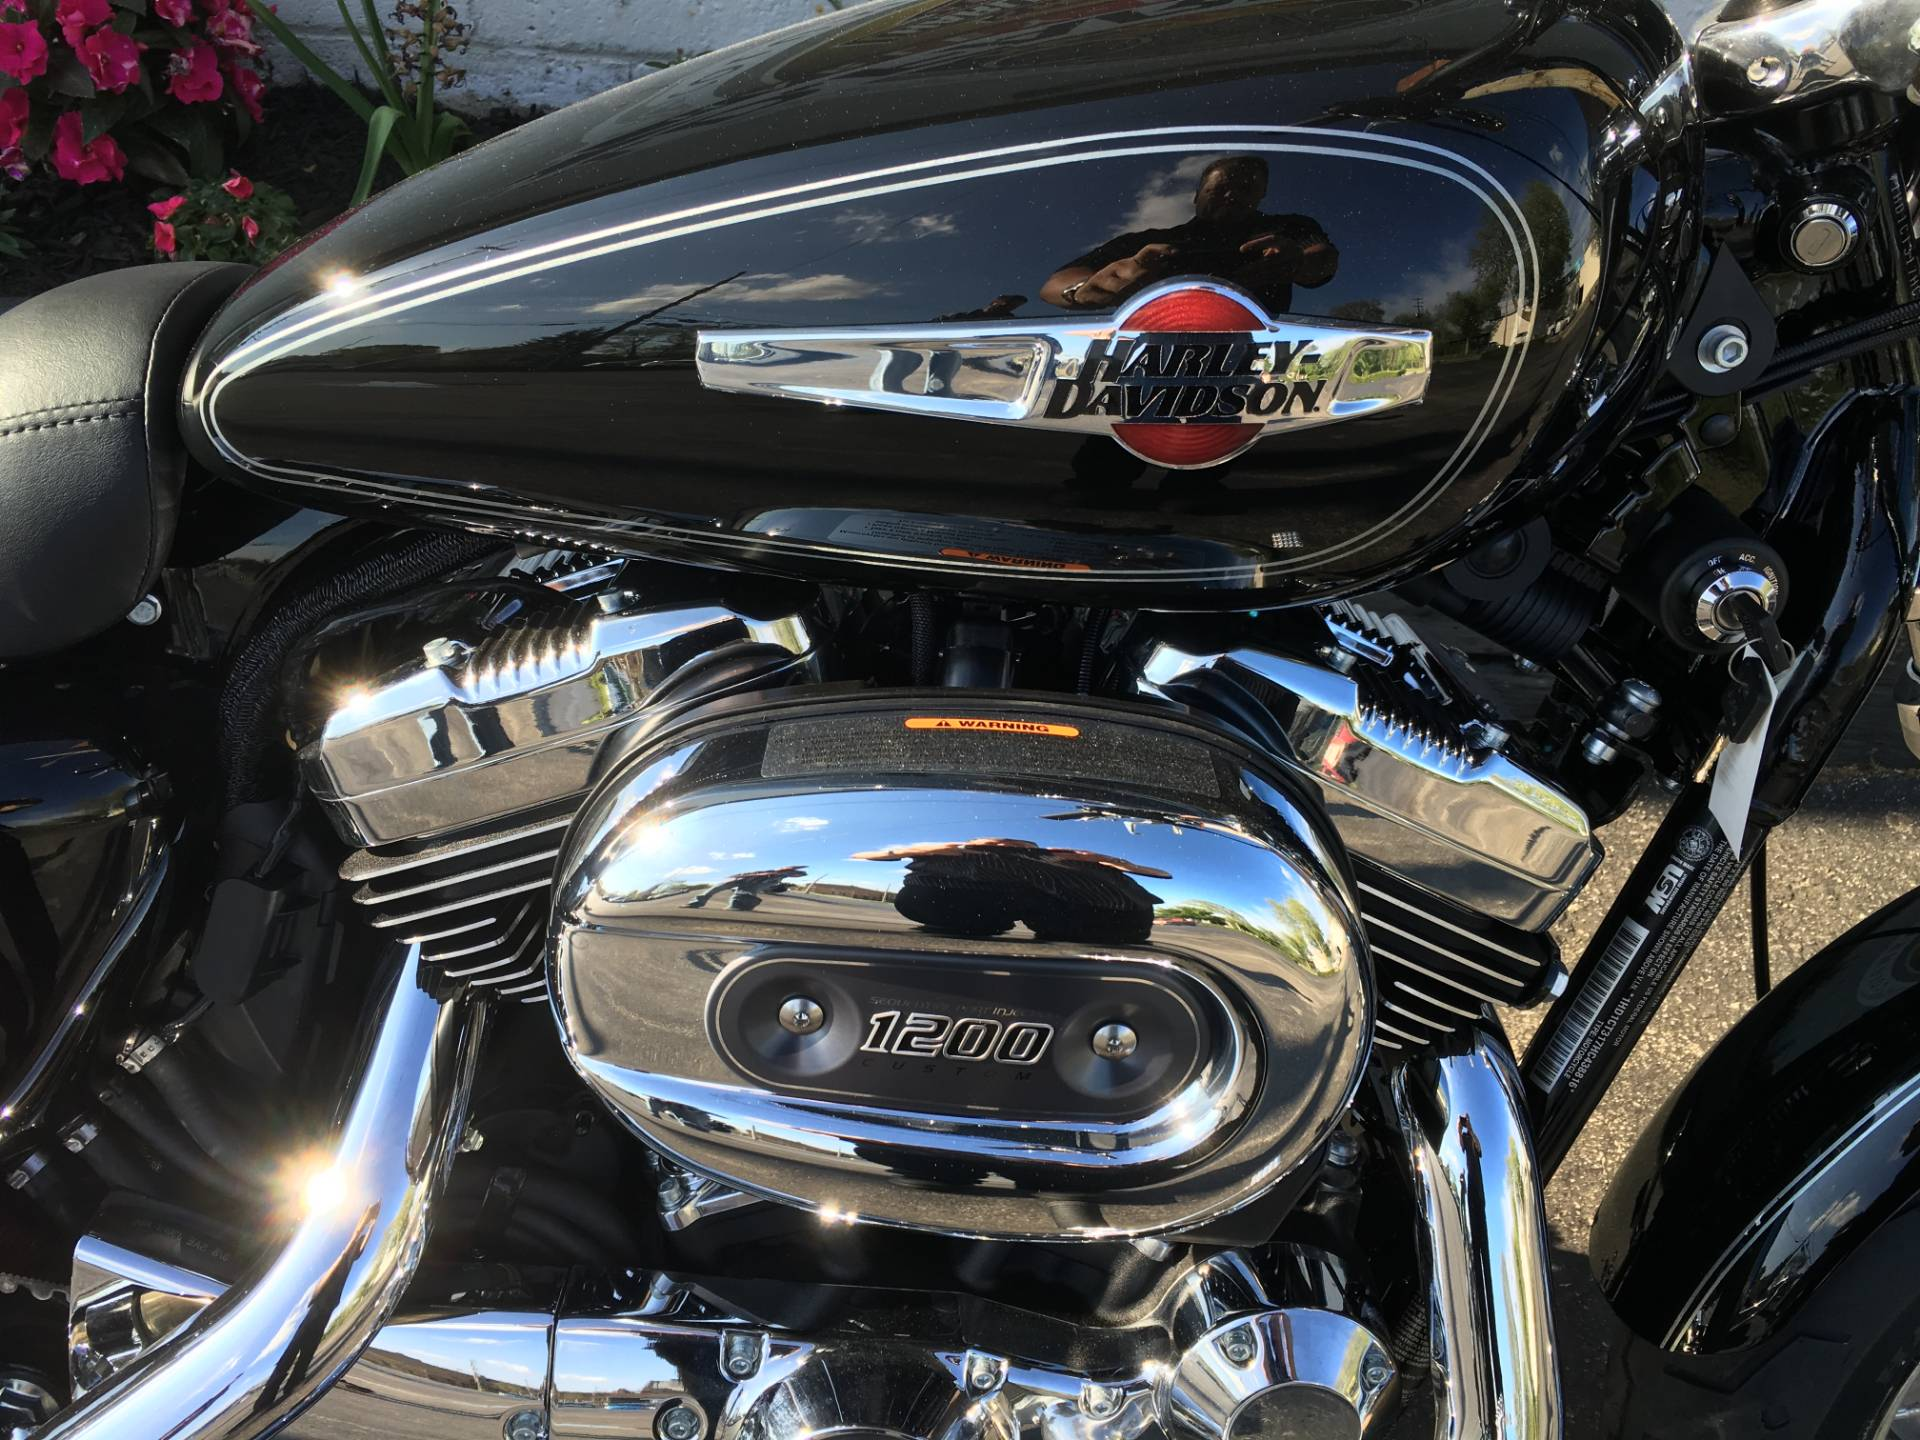 2017 Harley-Davidson 1200 Custom in Sunbury, Ohio